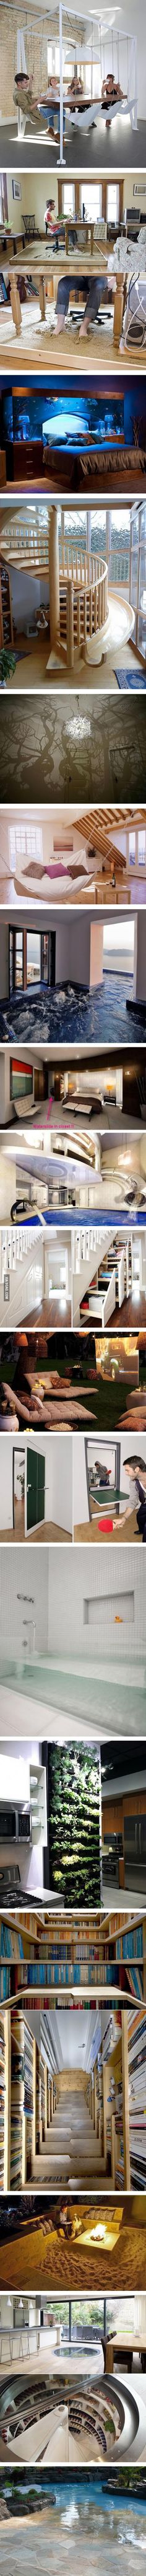 18 Awesome House Ideas! Okay, can I just have one house that combines all of these?!